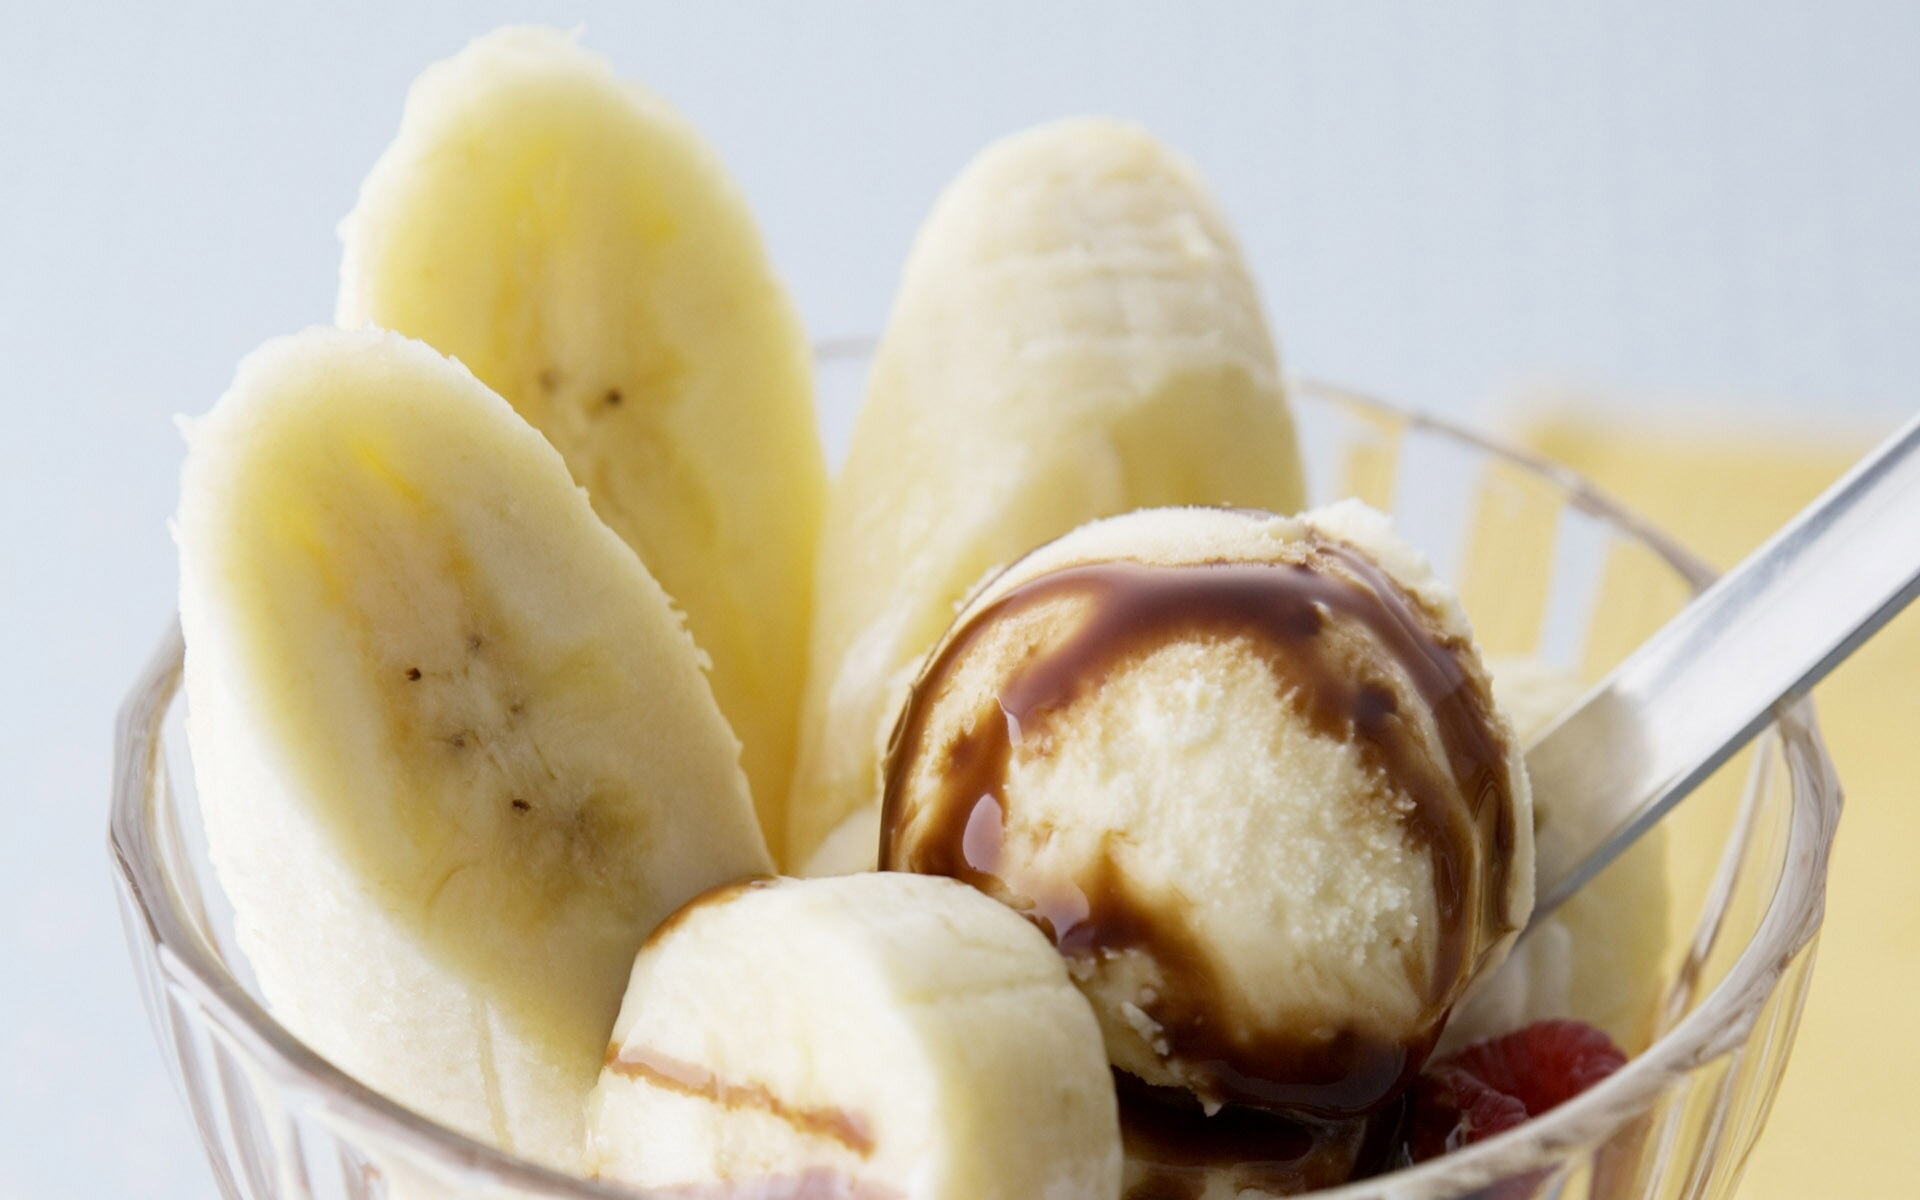 cream best banana ice cream recipe banana vanilla ice cream 3 ...